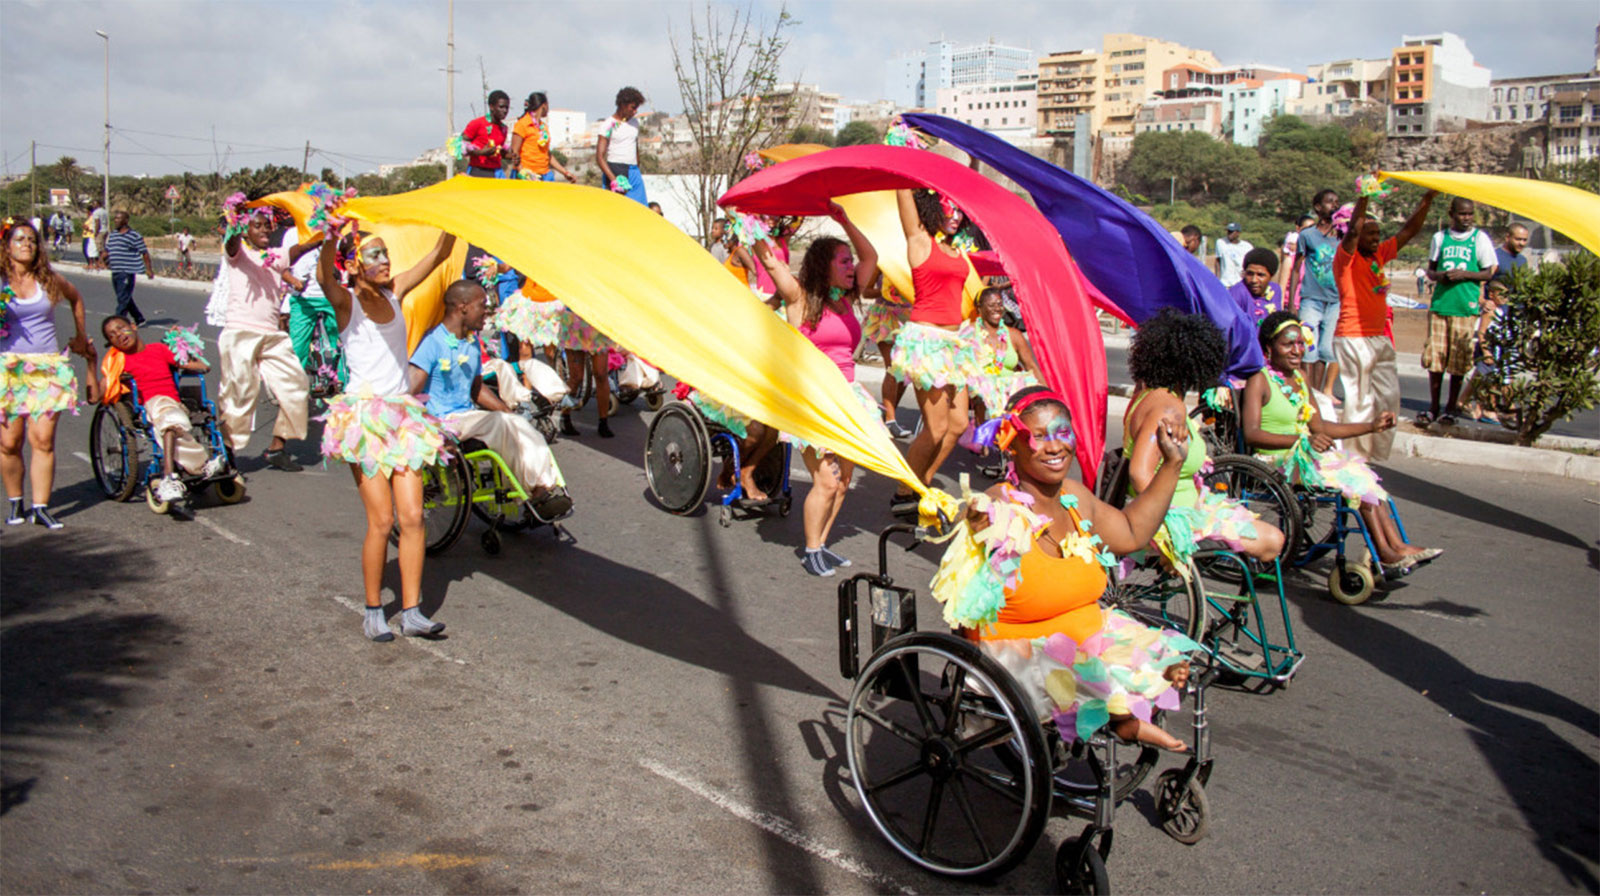 people-with-disabilities-in-a-parade-in-Cape-Verde